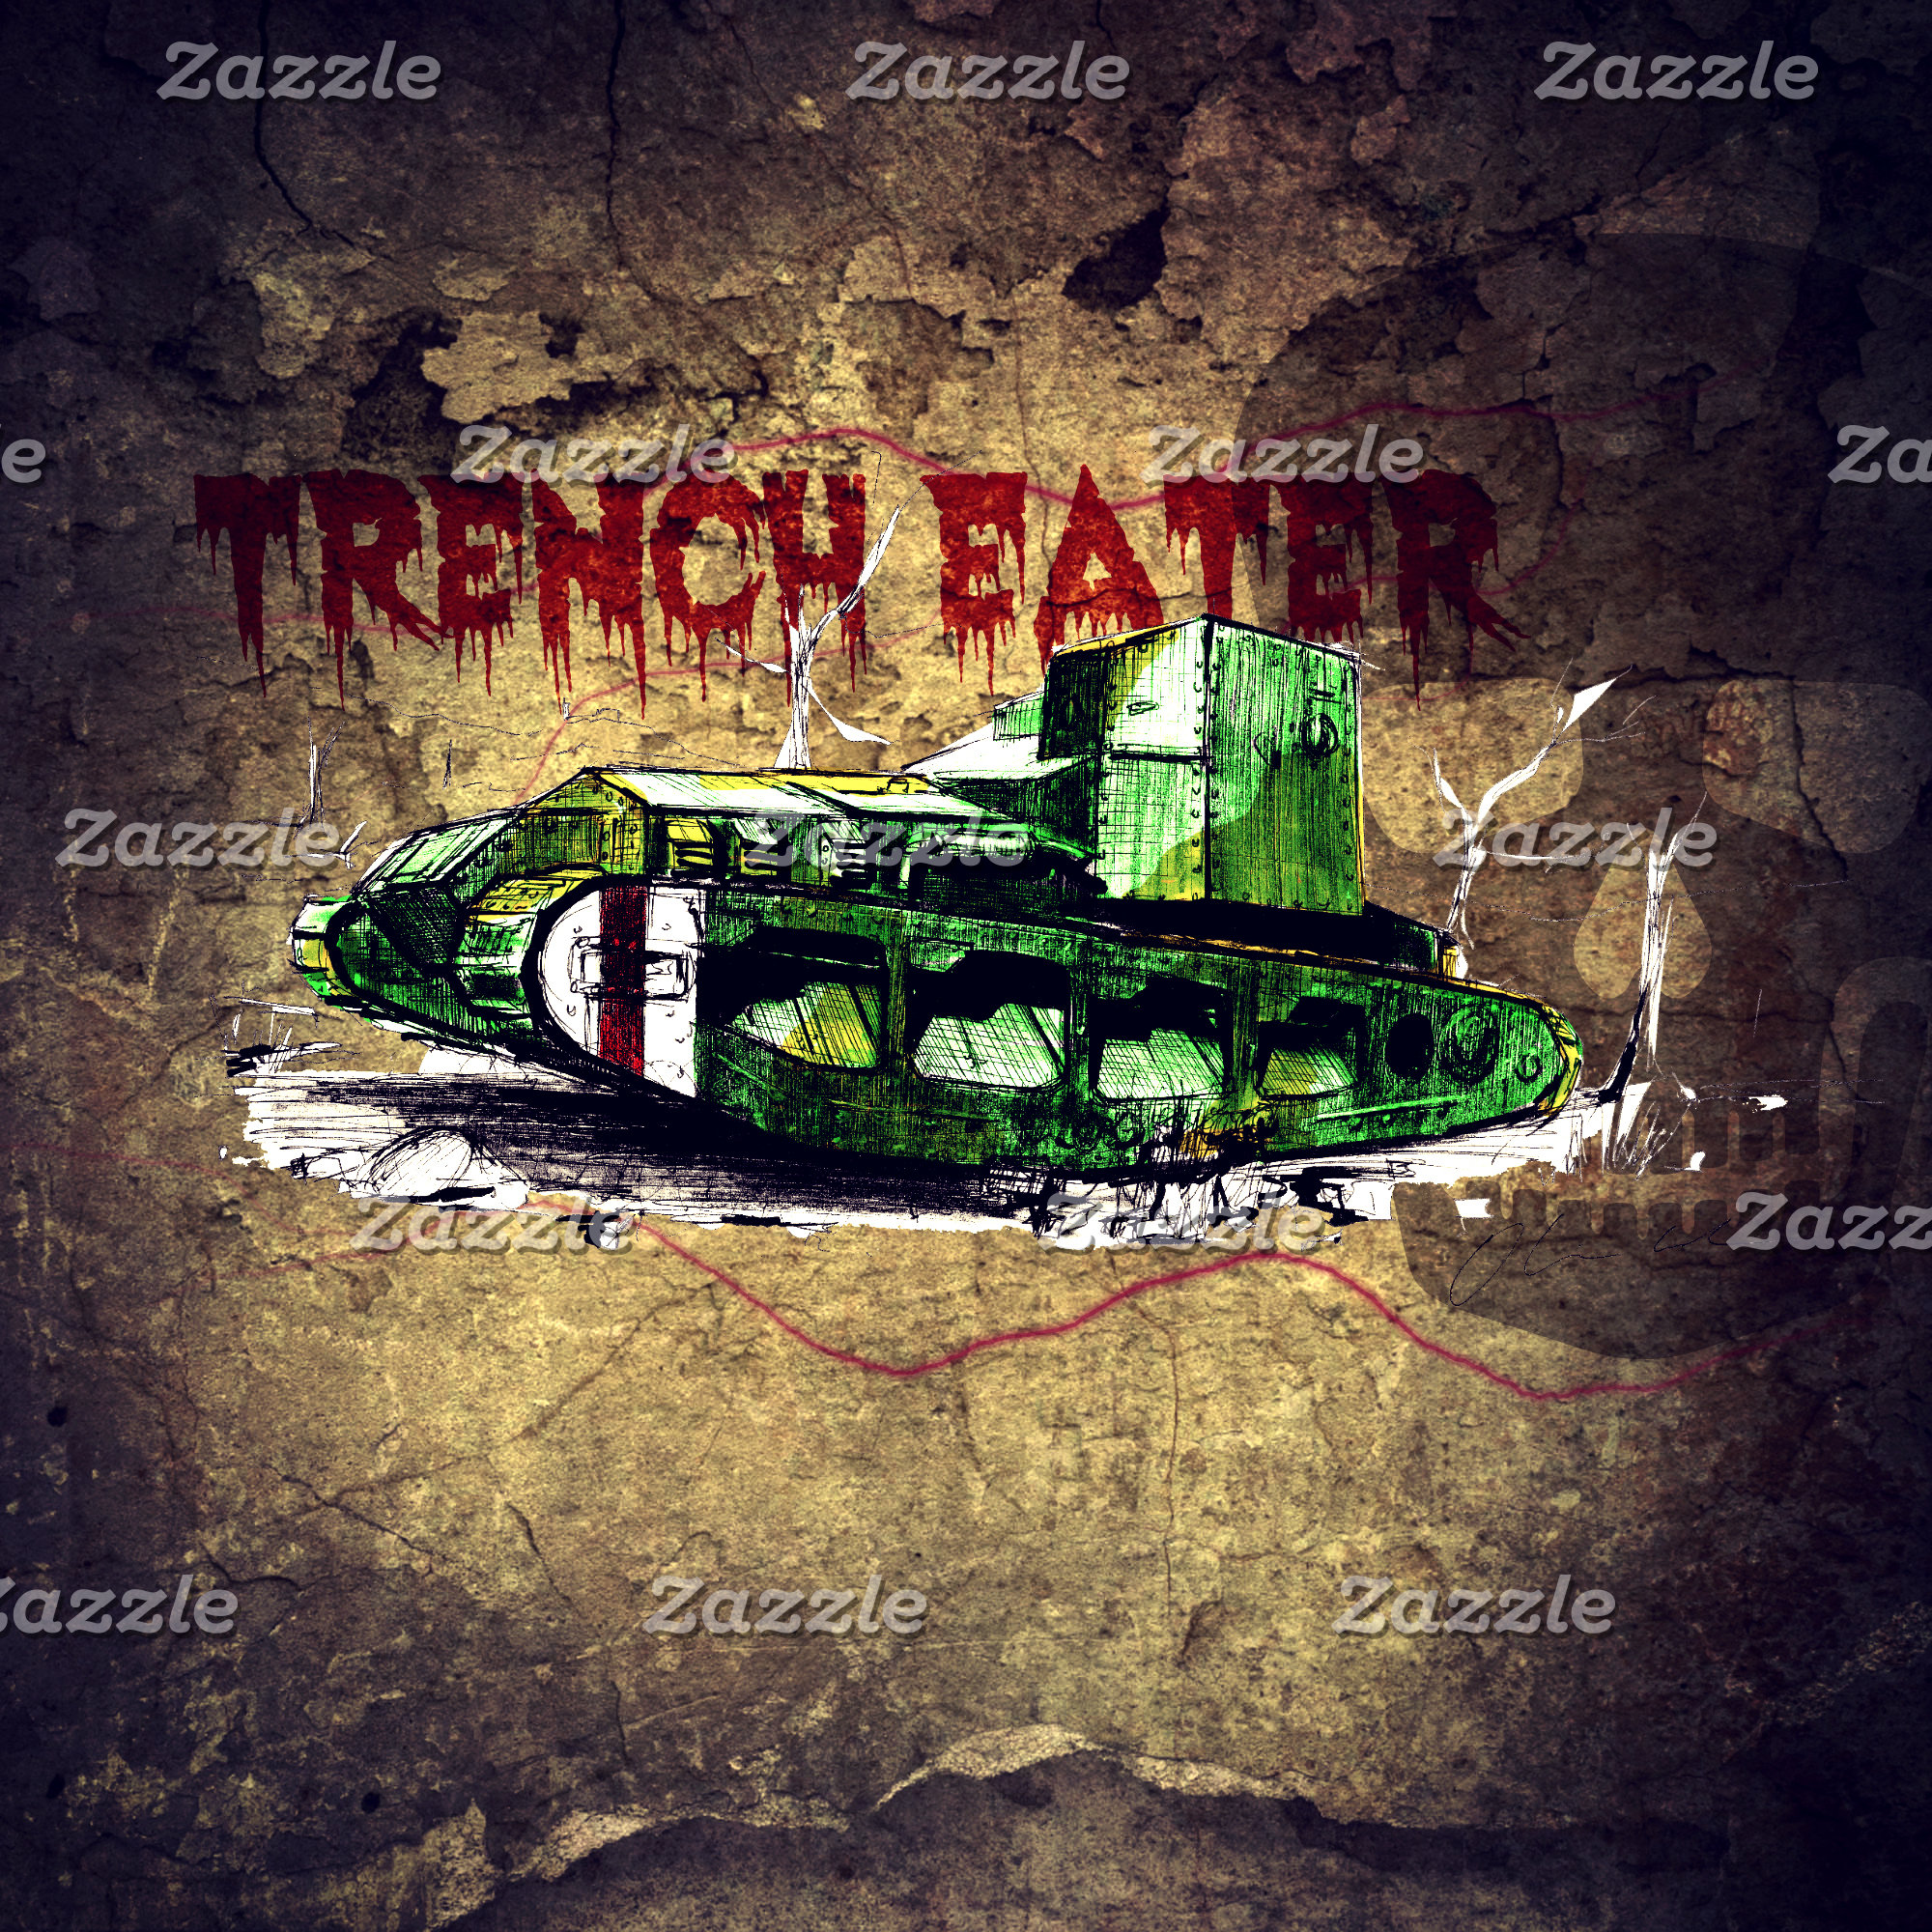 Trench Eater WW1 Tank